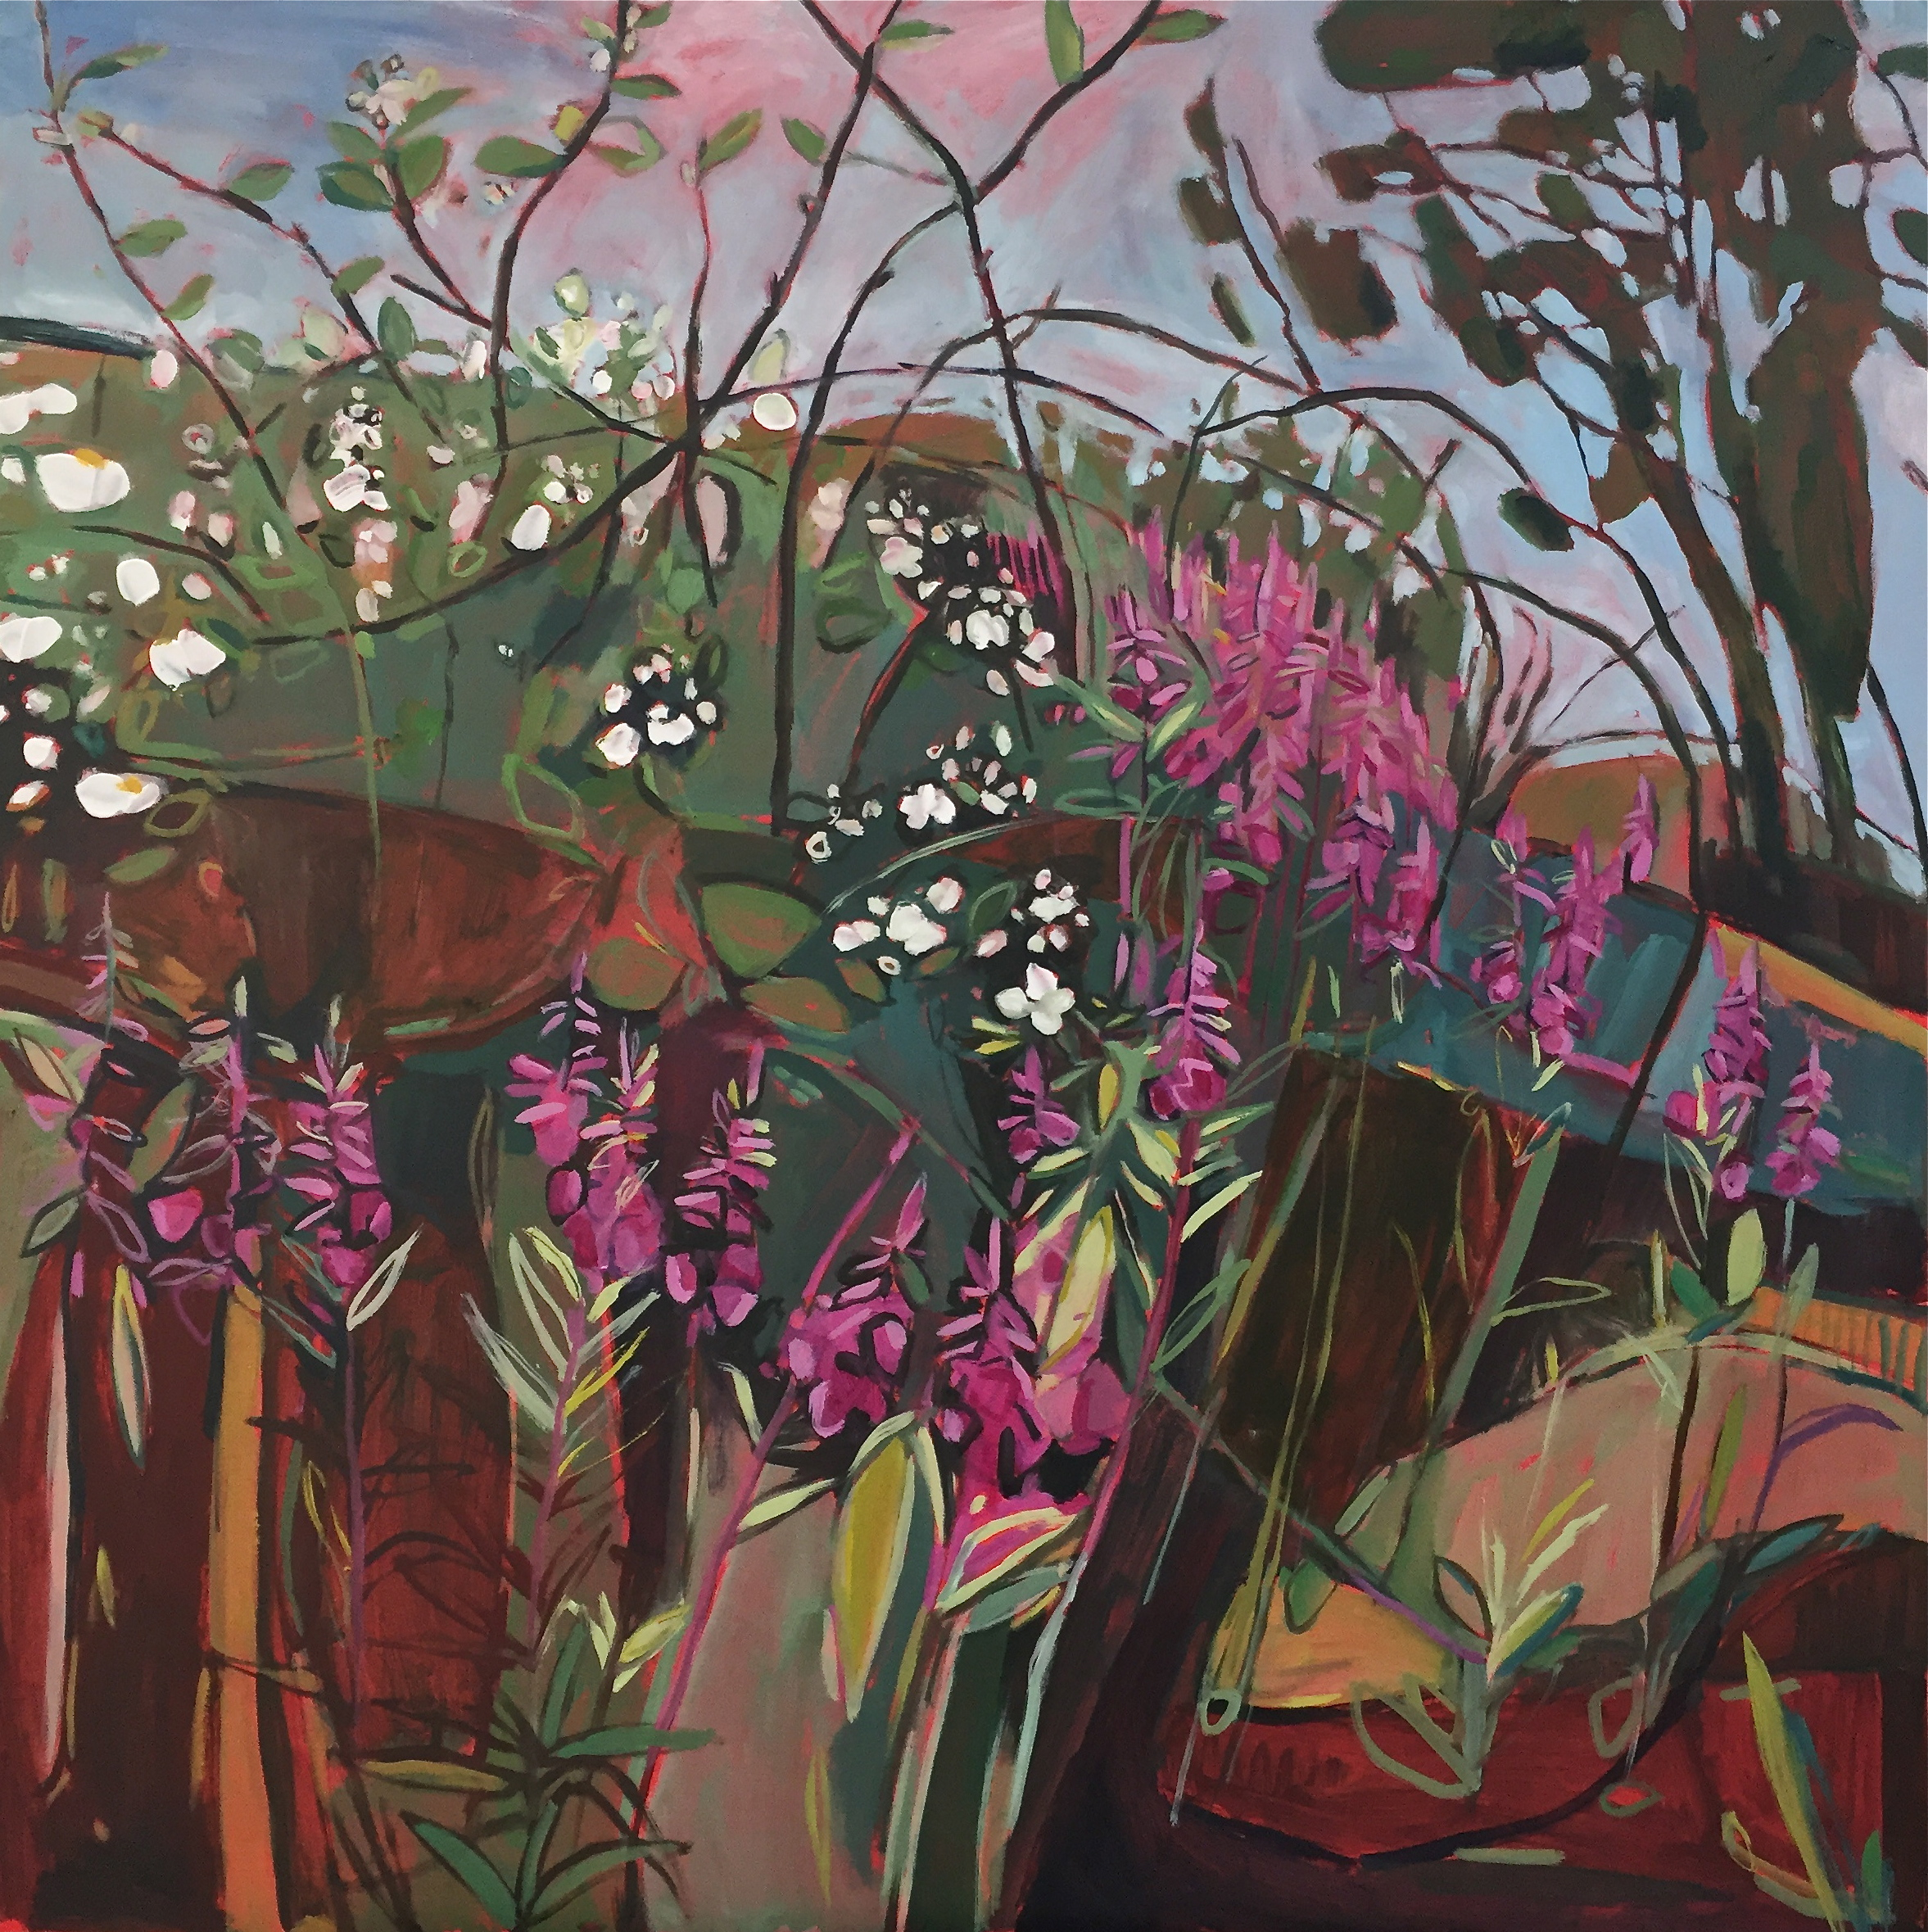 Midsummer Triptych - central panel, Eglantine, Bramble and Rose Bay Willow Herb